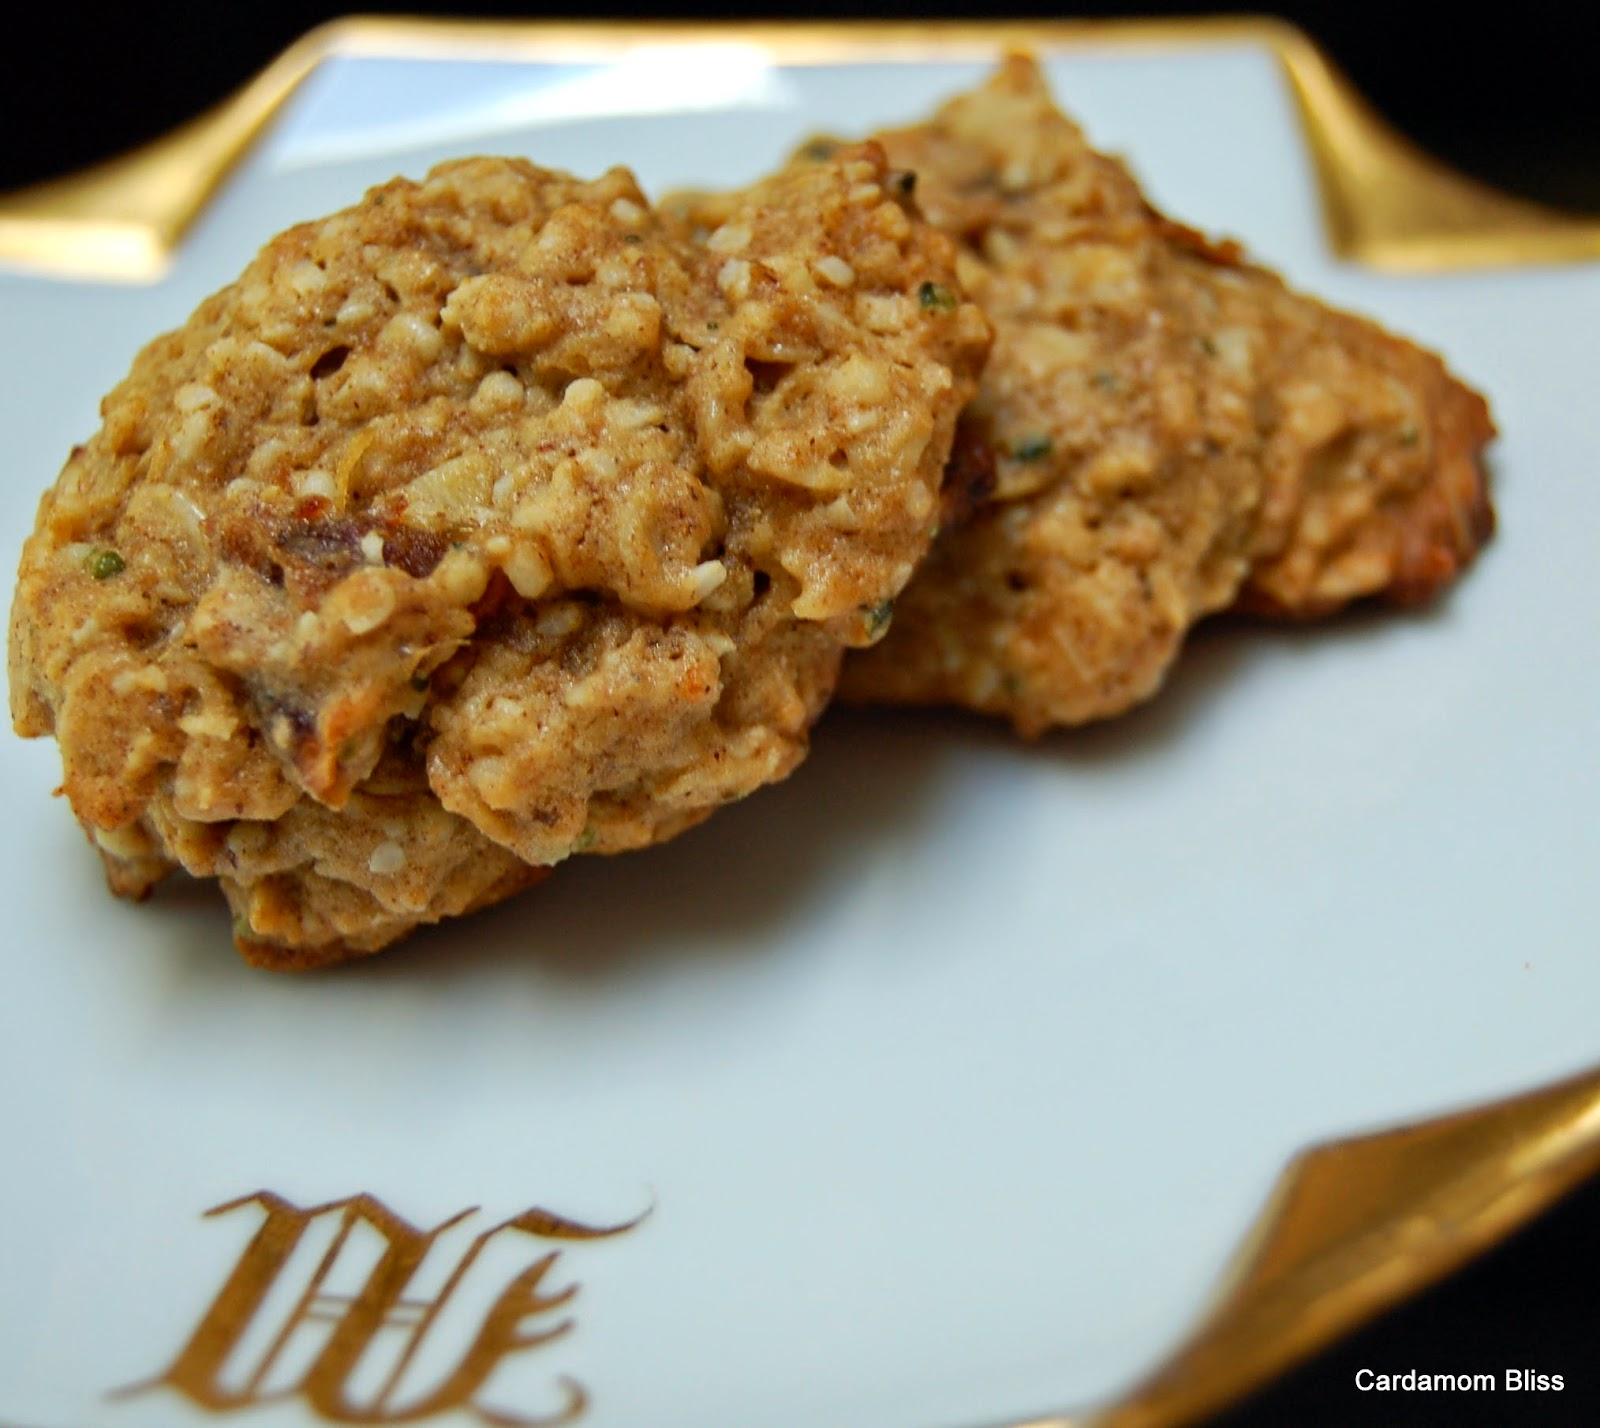 oatmeal dating Find and save ideas about date cookies on pinterest | see more ideas about date ball recipes with rice krispies, desserts with dates and recipe date oatmeal cookies.